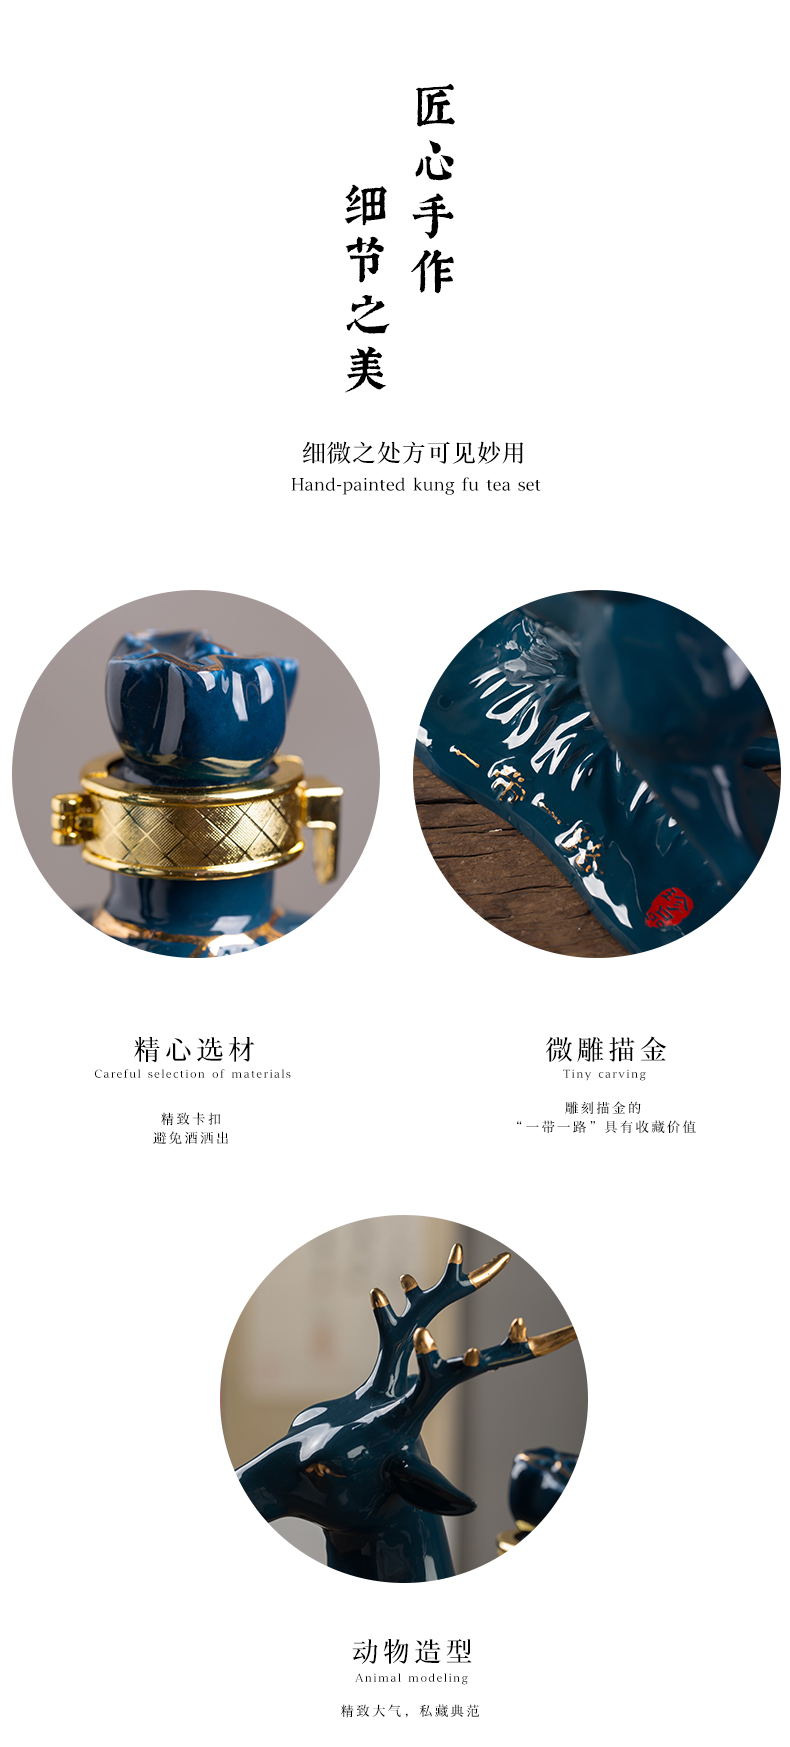 Jingdezhen ceramic bottle 2 jins jars household adornment ark, furnishing articles sealed storage wine empty wine bottle of wine